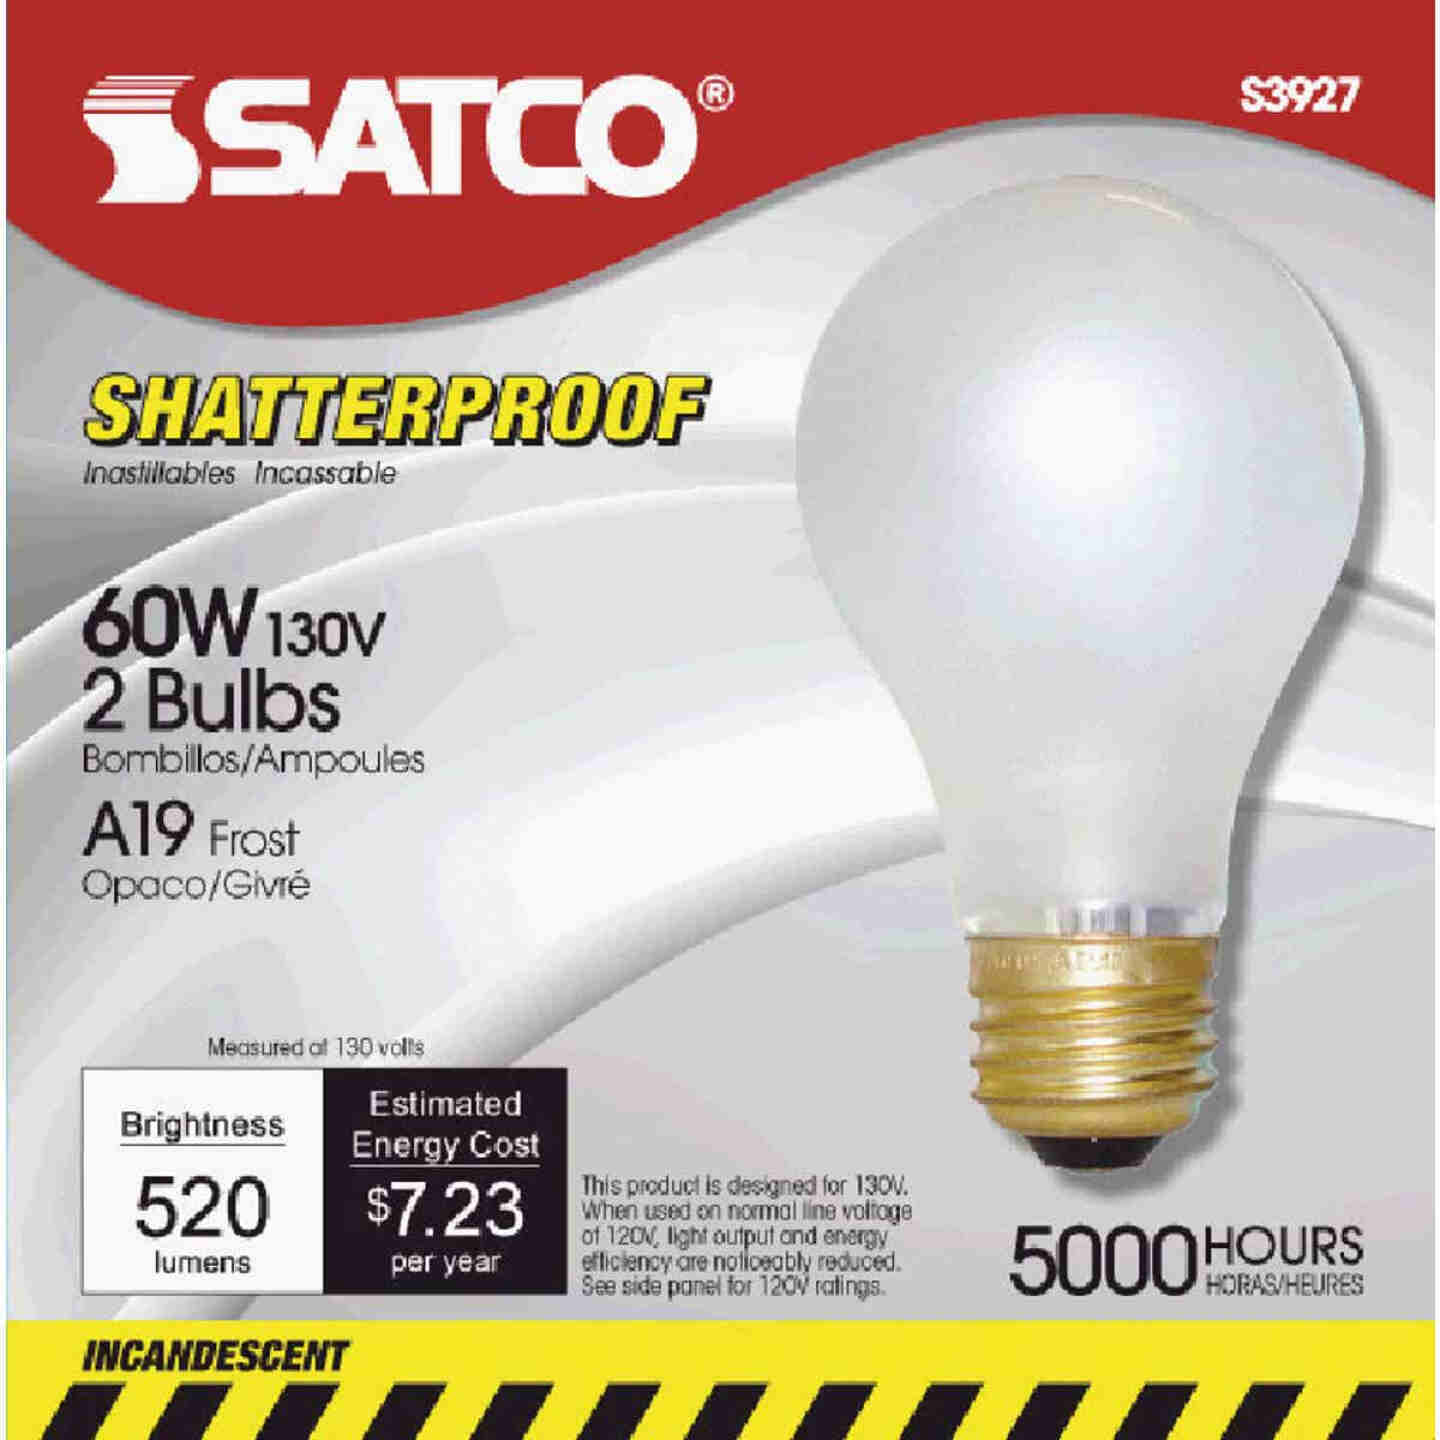 Satco 60W Frosted Medium Base A19 Shatterproof Incandescent Rough Service Light Bulb (2-Pack) Image 1